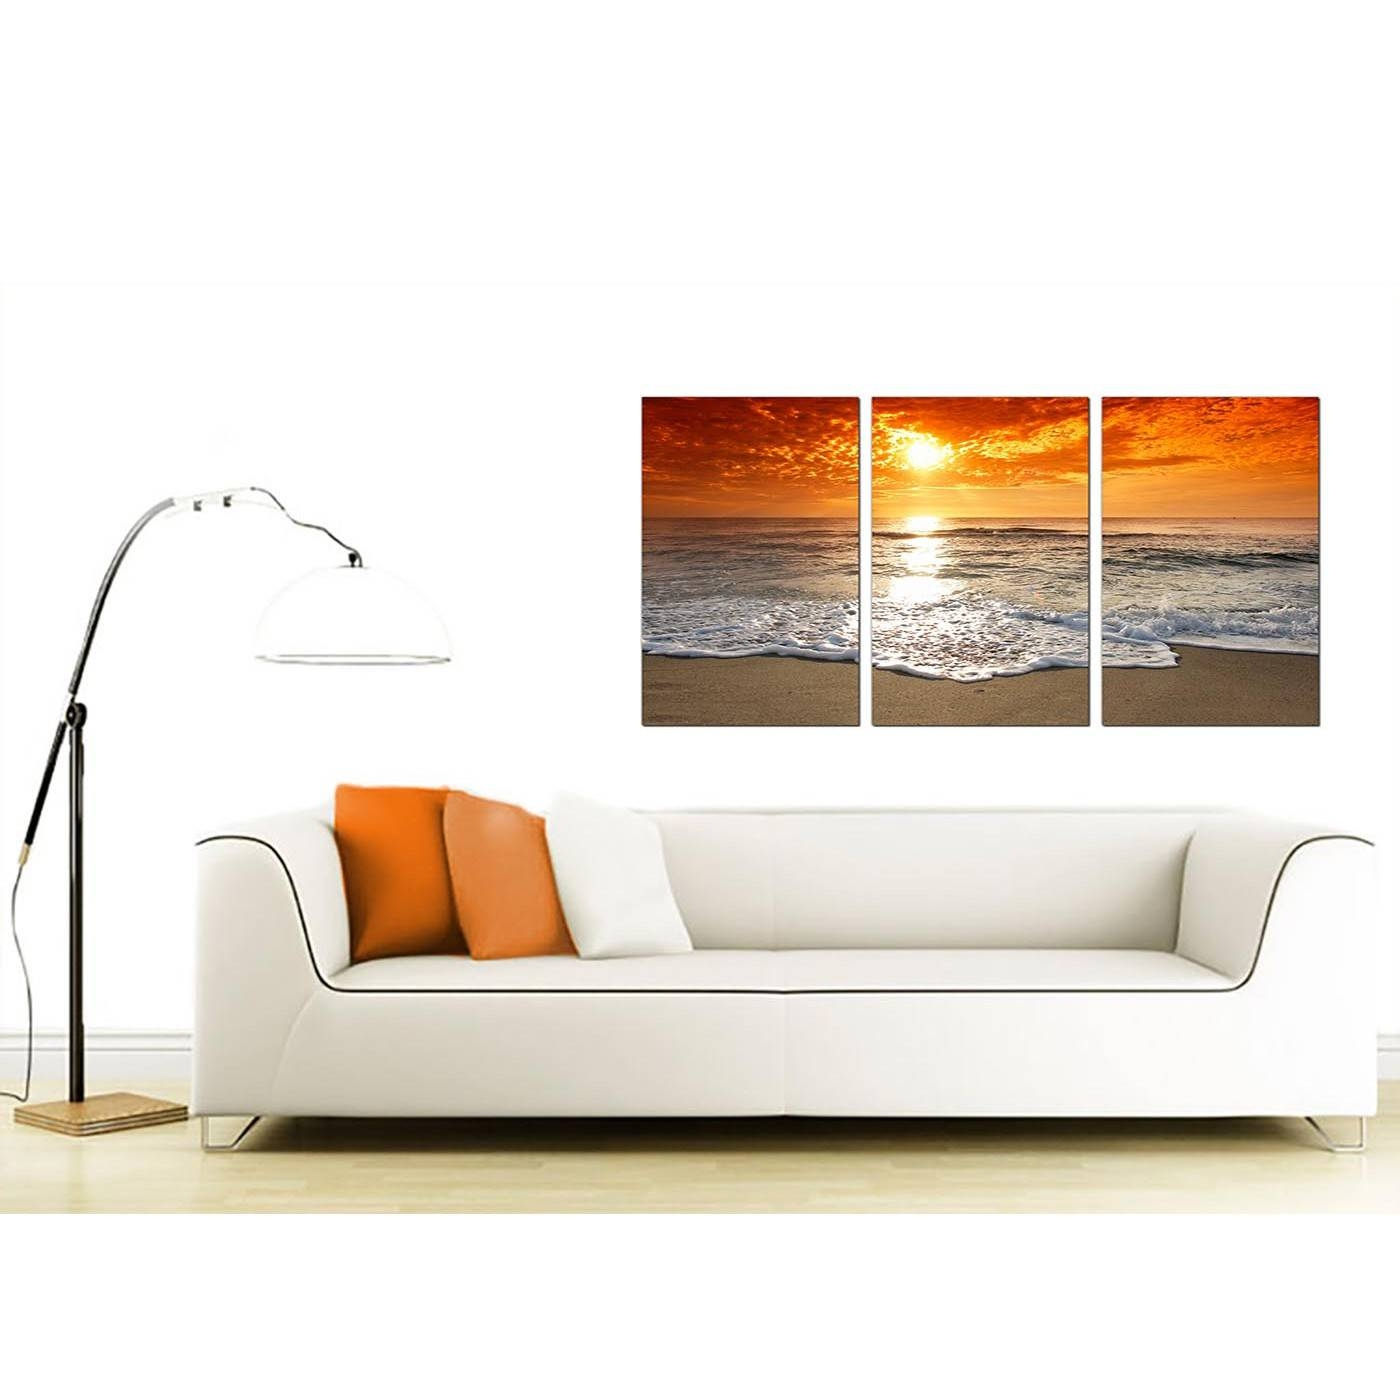 Cheap Beach Sunset Canvas Prints Uk Set Of 3 For Your Living Room With Regard To Recent Canvas Wall Art Sets Of (View 18 of 25)